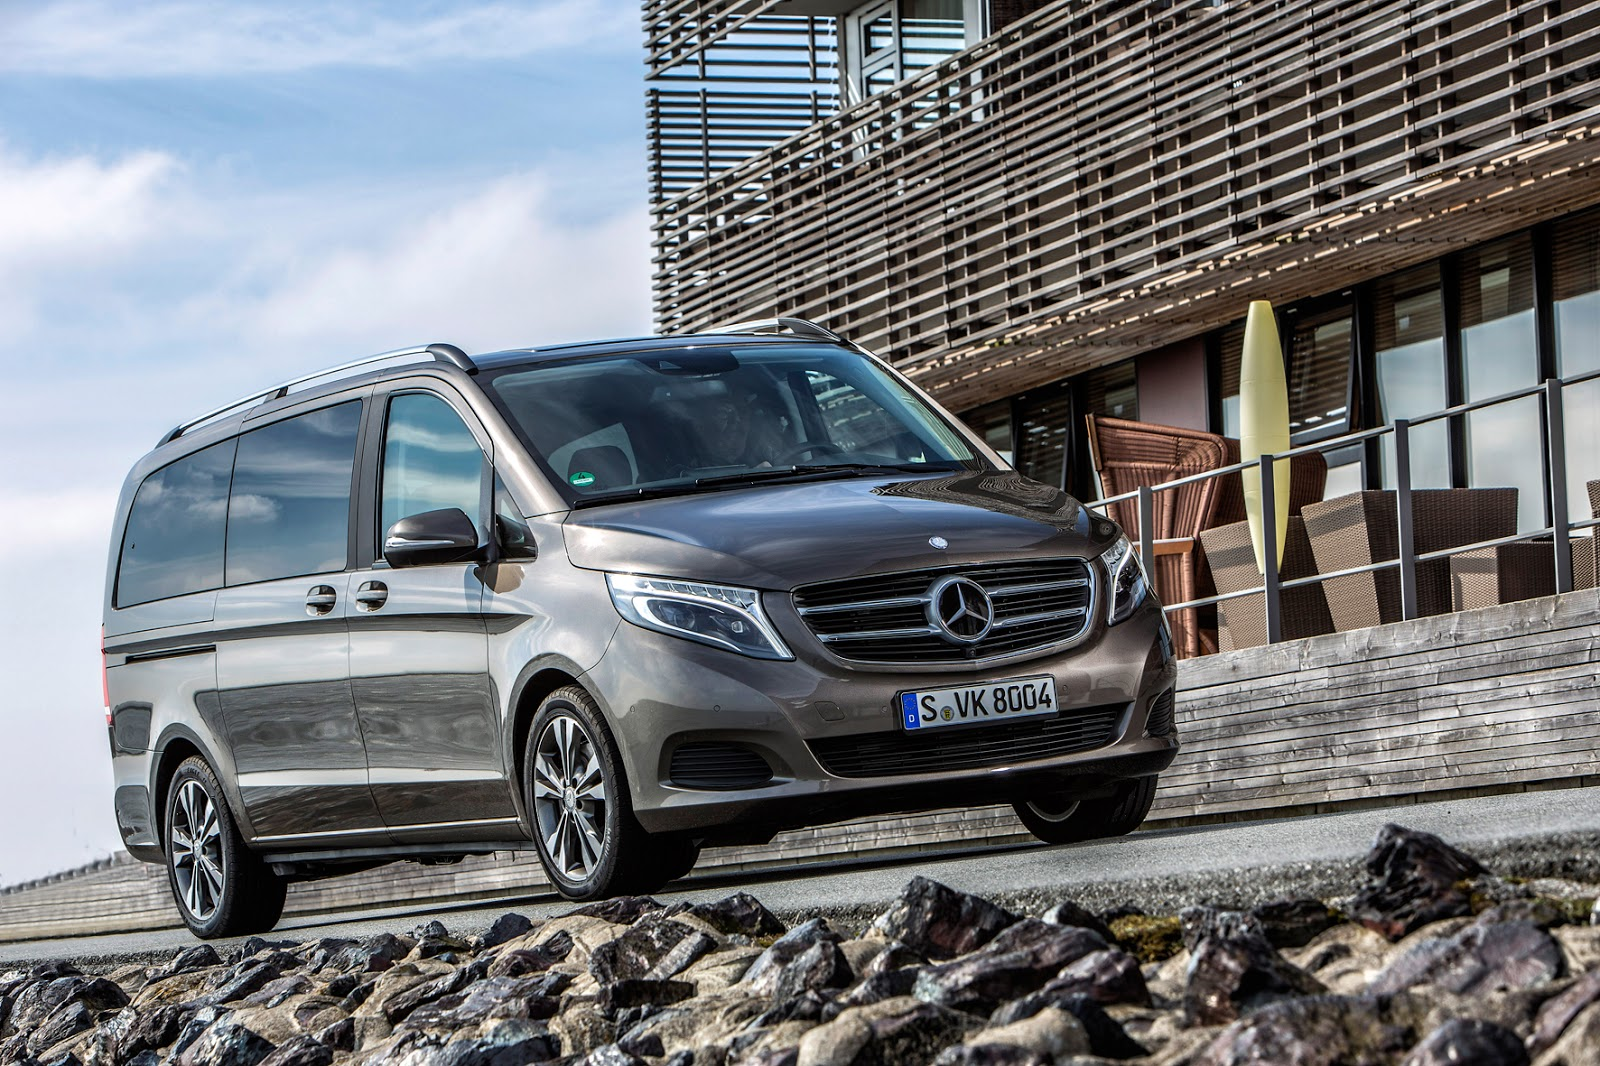 mercedes benz v class the ultimate luxury family car maison chaplin. Black Bedroom Furniture Sets. Home Design Ideas